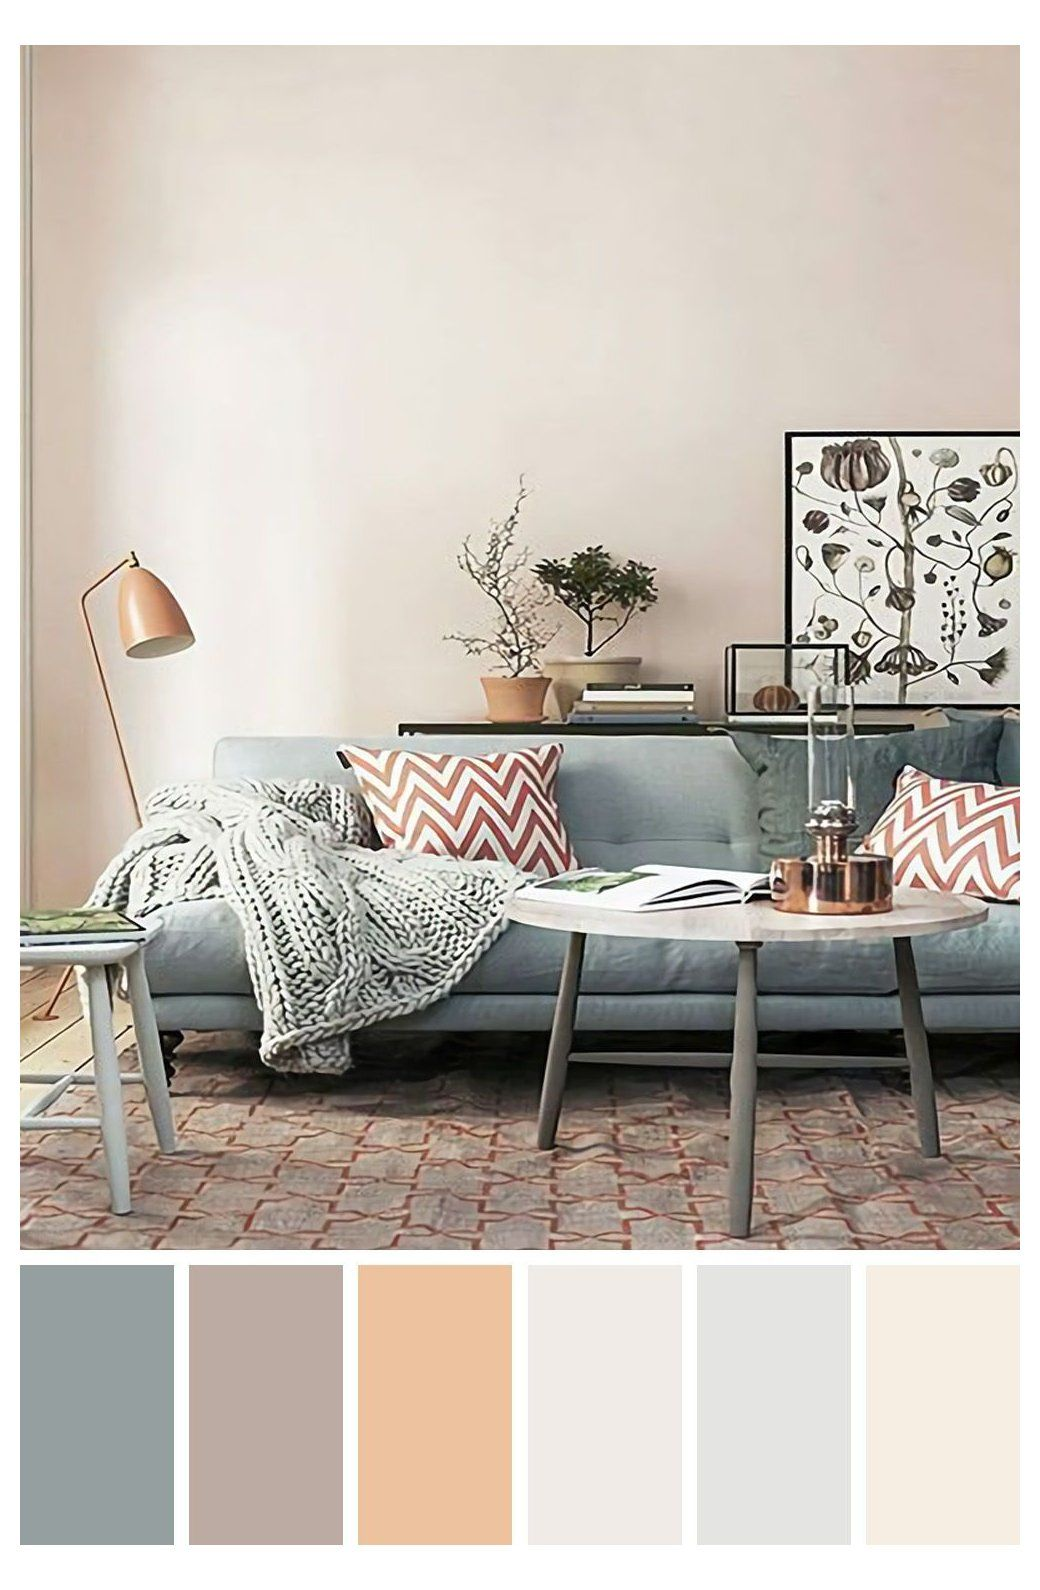 25 Gorgeous Living Room Color Schemes To Make Your Room Cozy Cozy Home Color Schemes The Living Room Color Schemes Living Room Wall Color Living Room Color Cozy living room colors